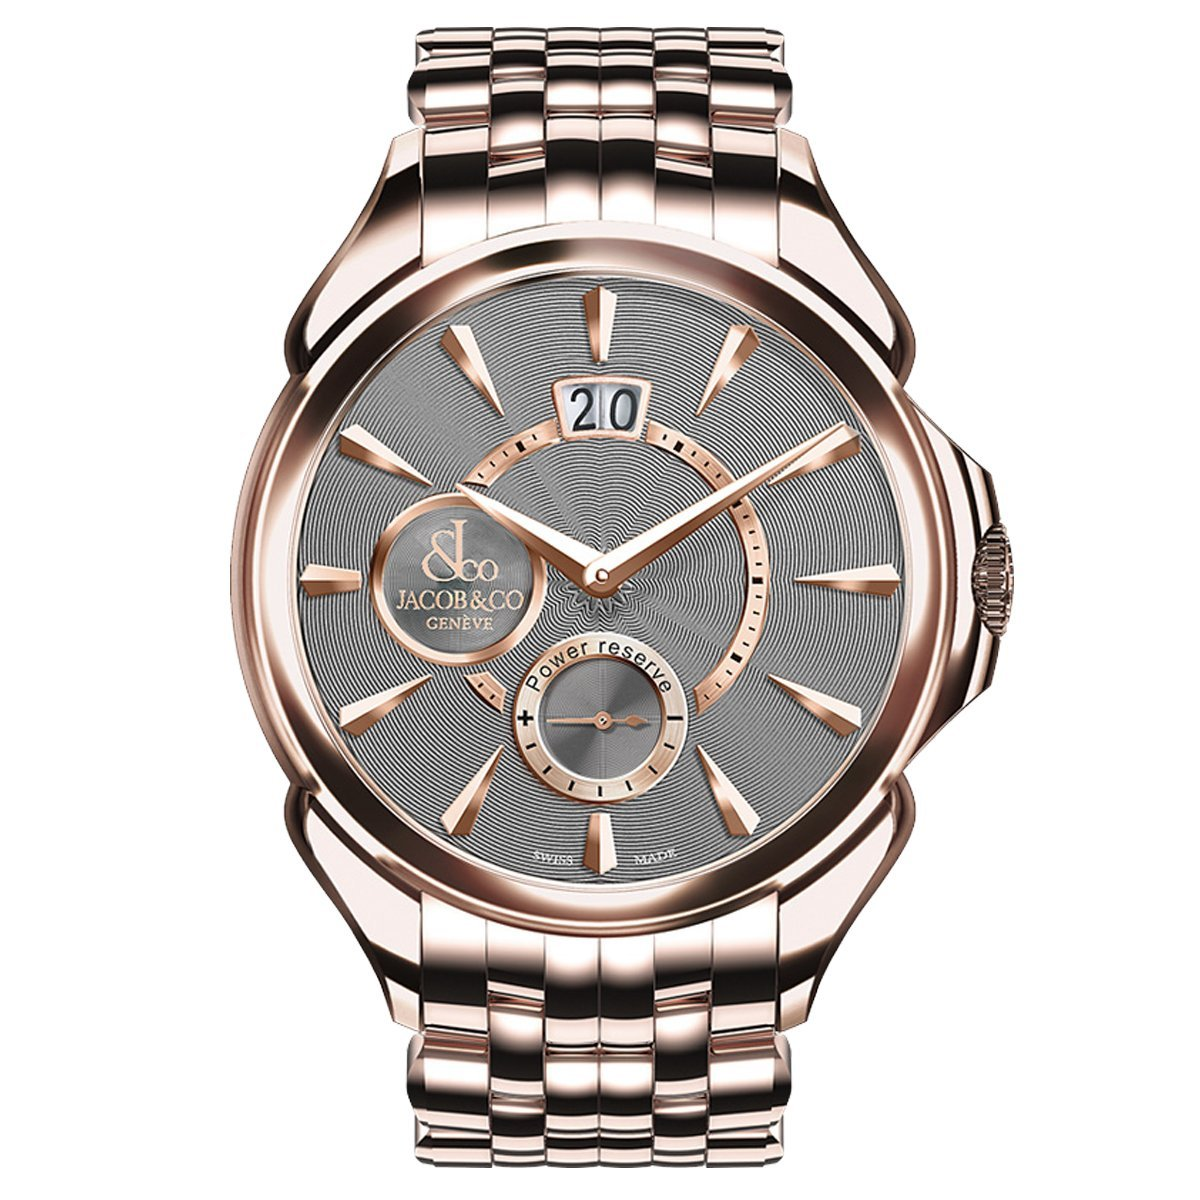 Jacob & Co. Palatial Classic Manual Big Date Grey Rose Gold - Watches & Crystals